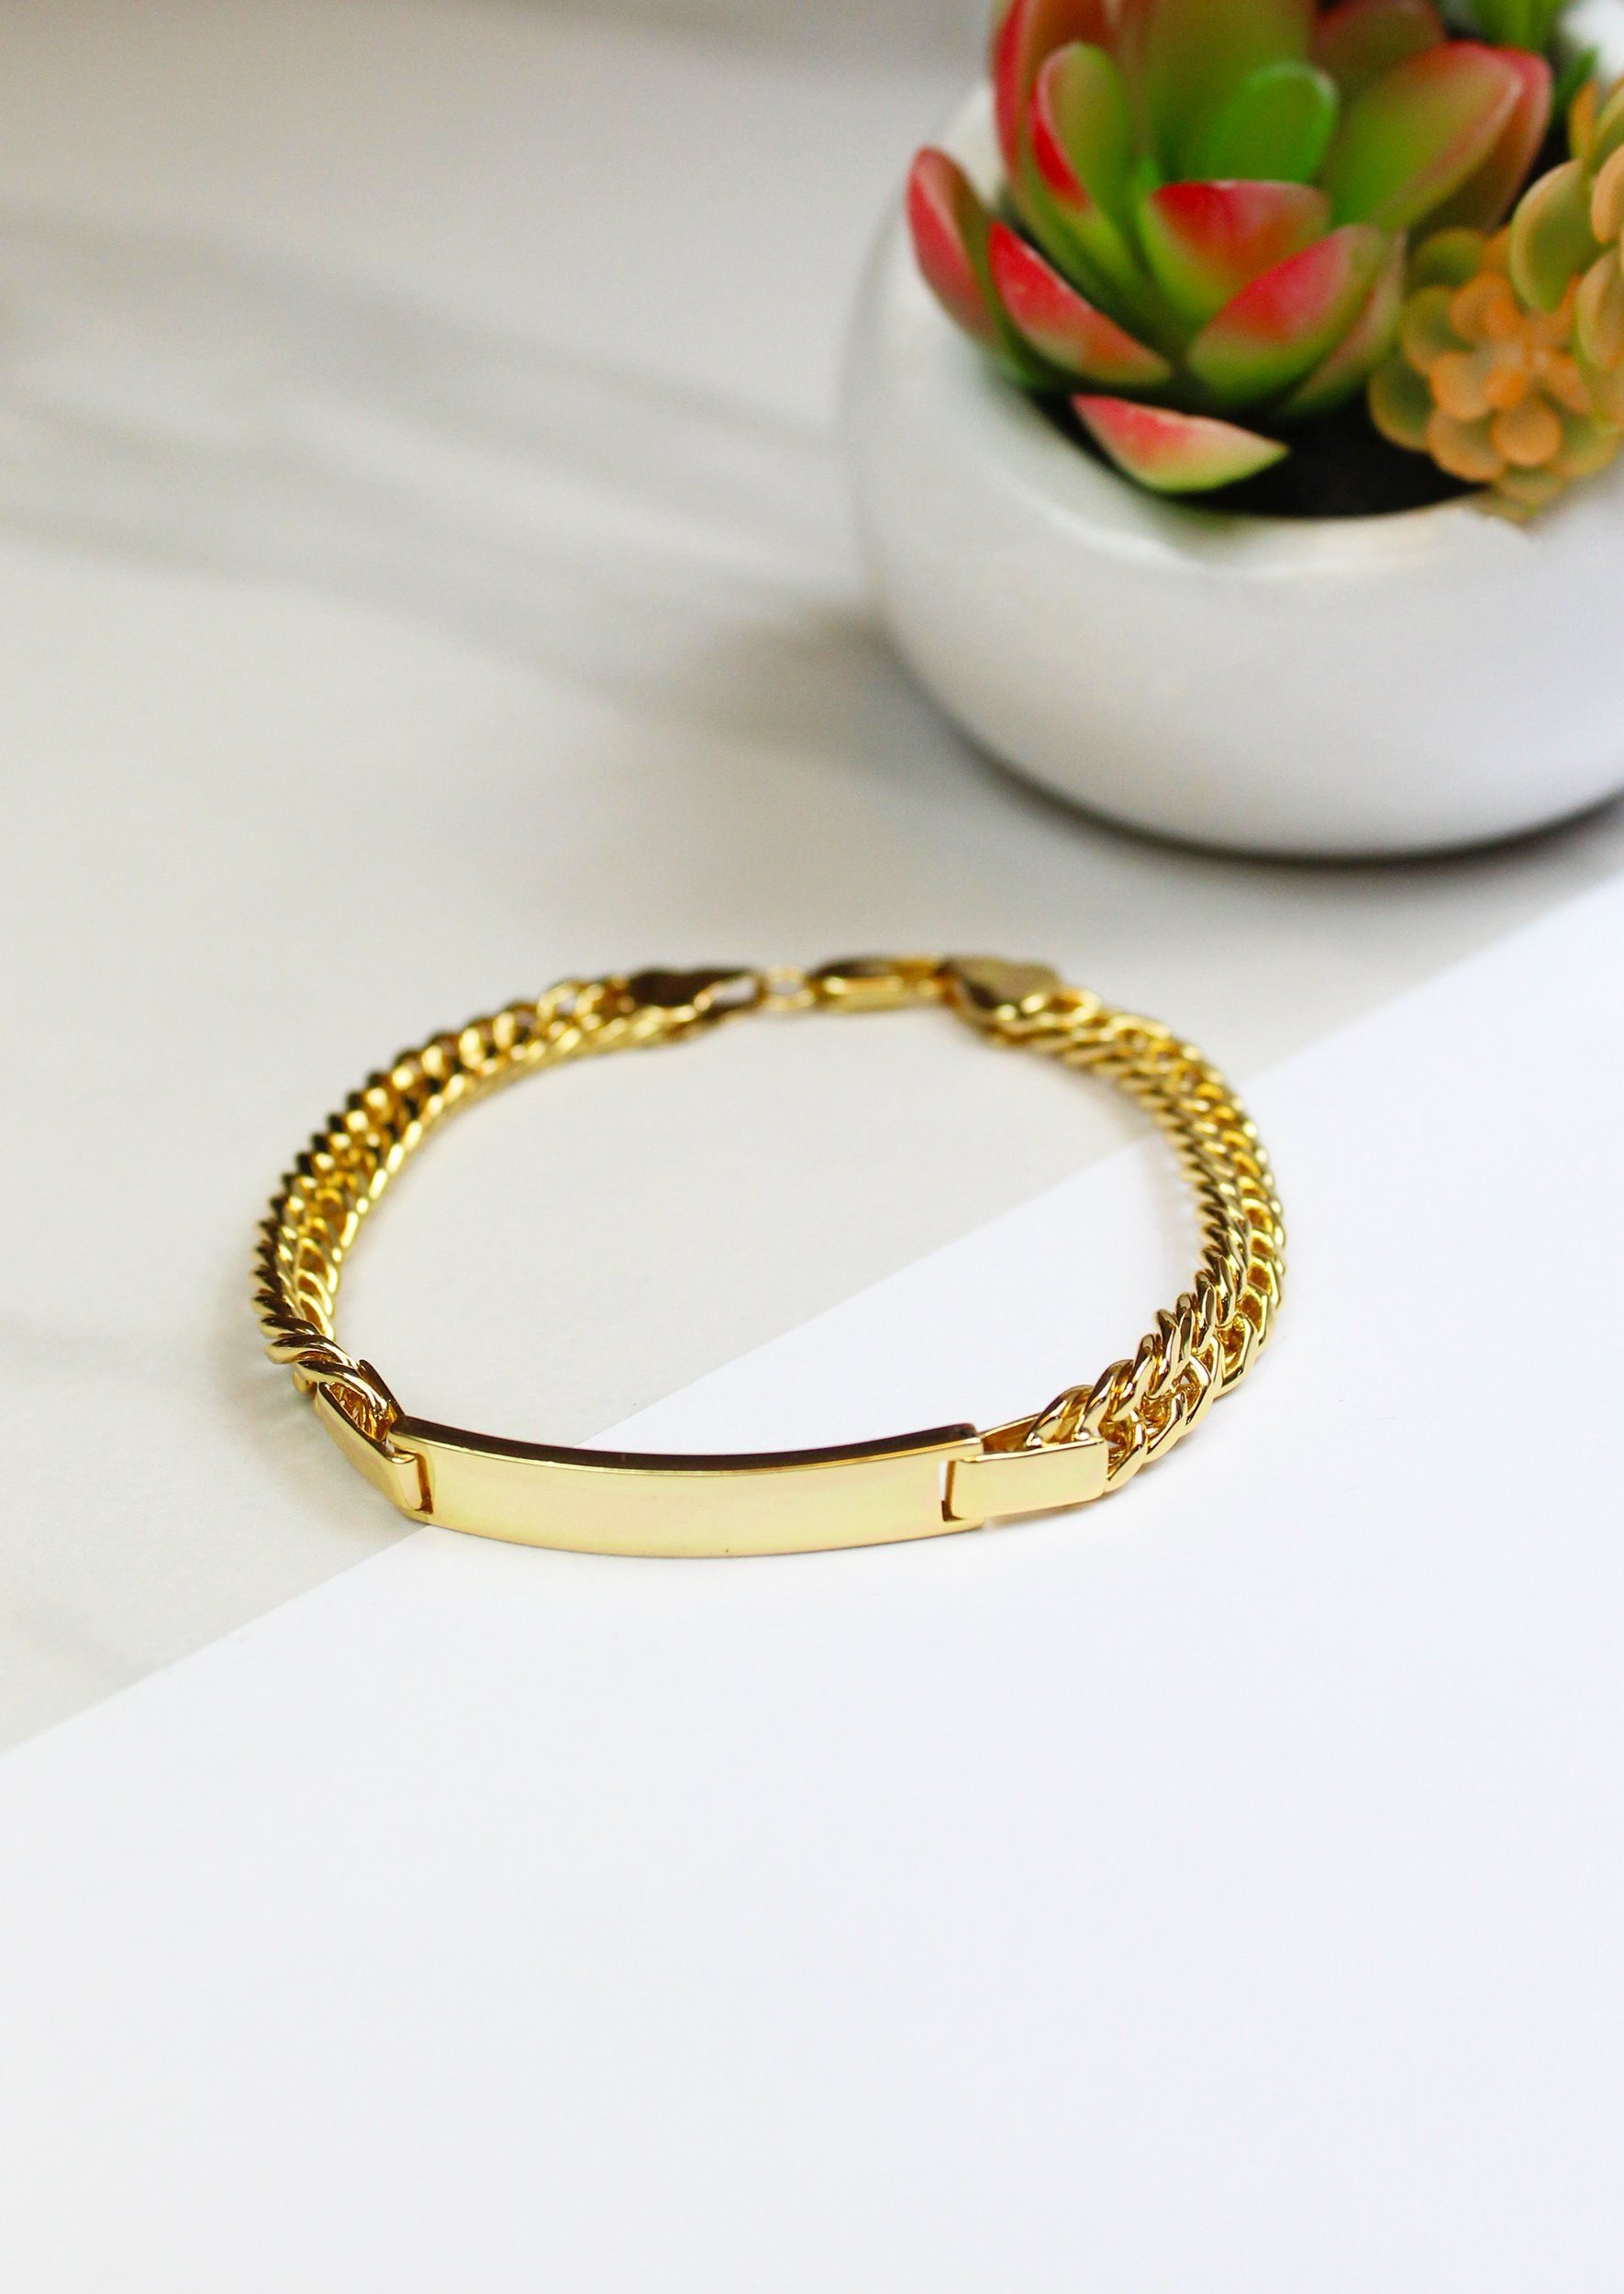 Jules Smith Ice Queen Collection Veronica Bracelet A Classic Id Bracelet Design With An Elevated Curb Chain M Bracelets Boho Style Jewelry Bracelet Designs